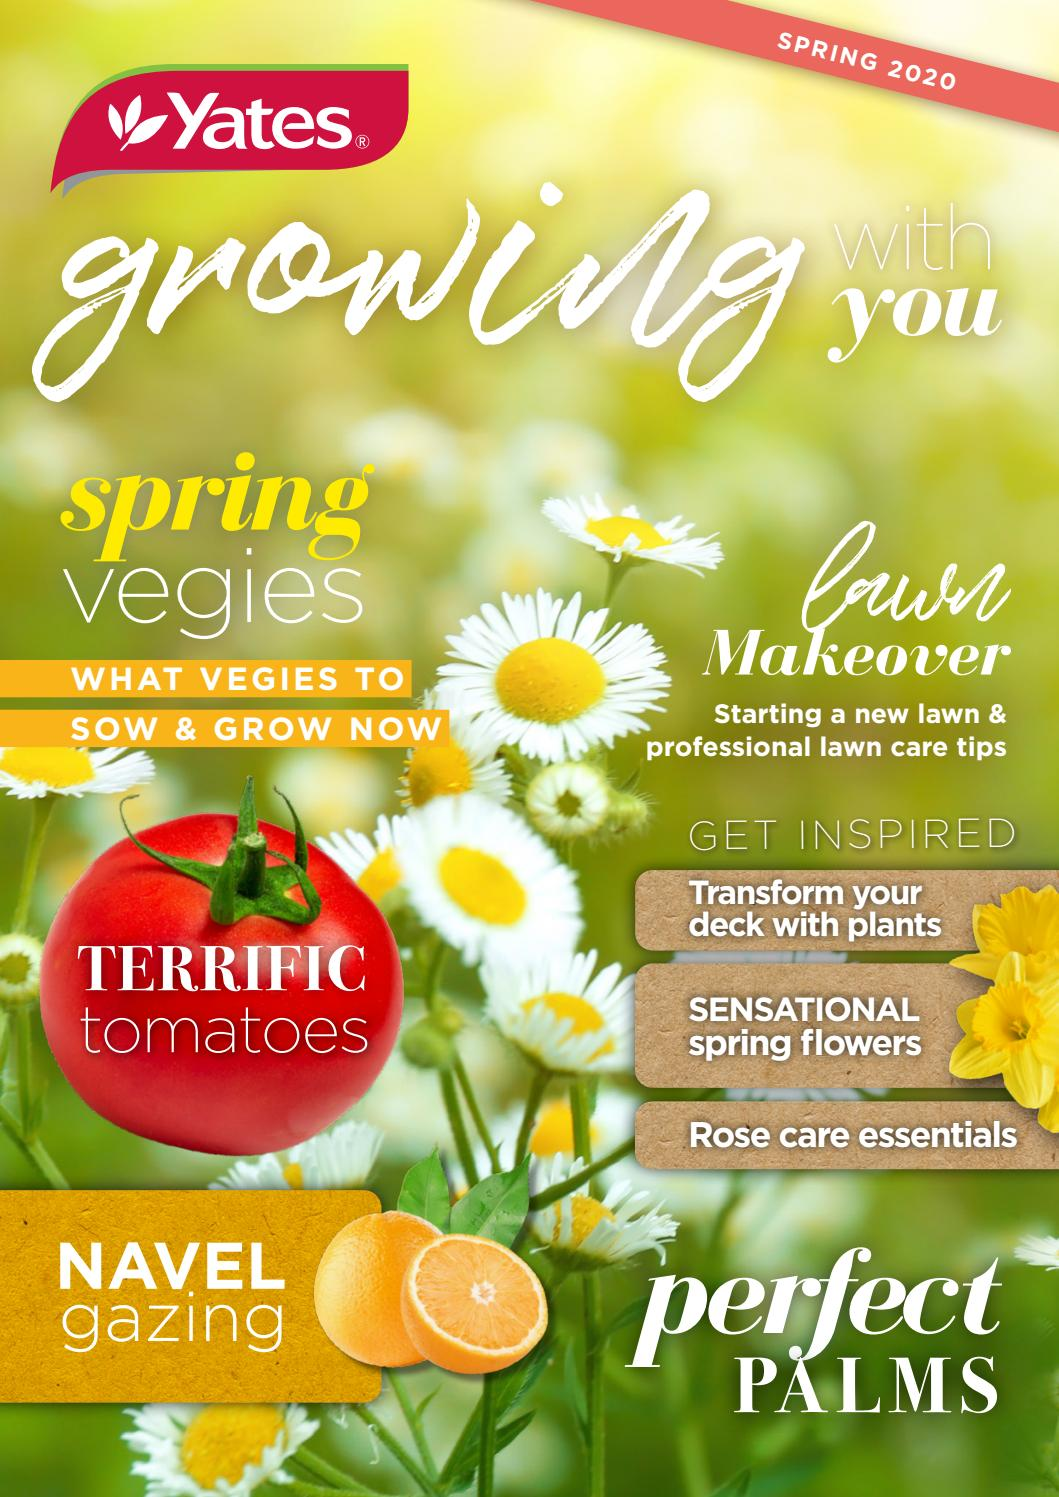 Yates Growing With You Spring Edition 2020 By Yatesgardening Issuu